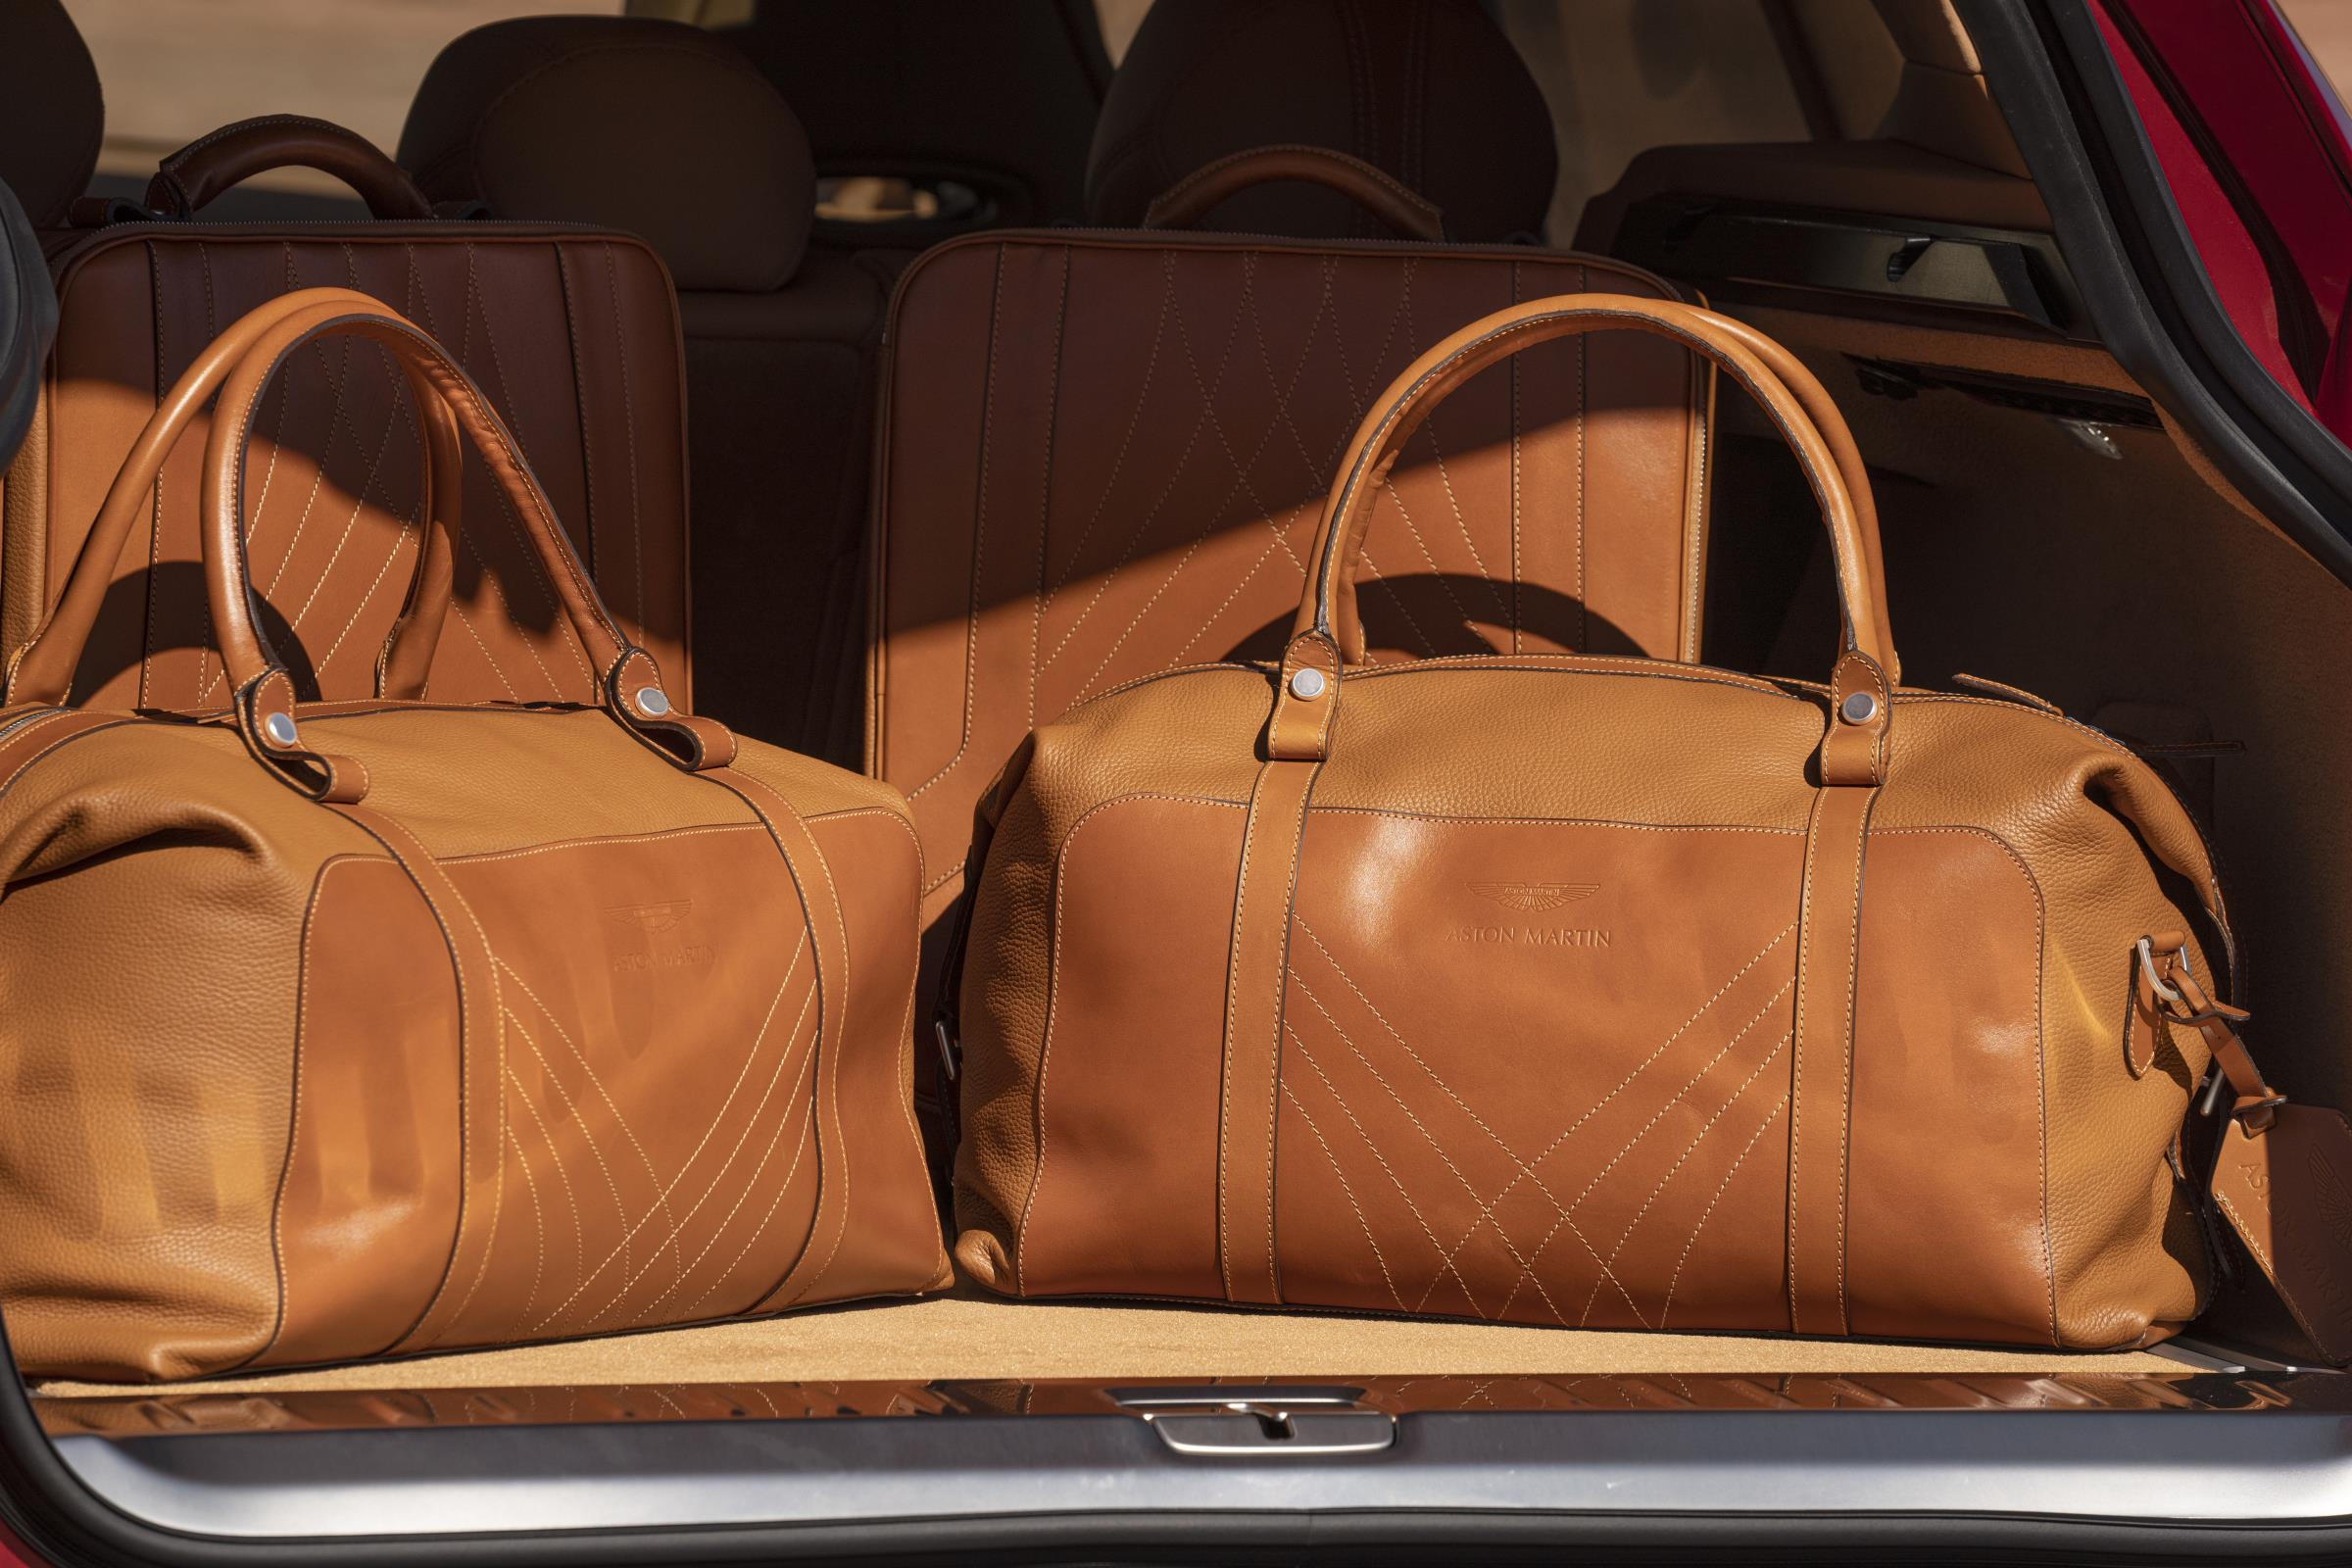 Aston Martin DBX Luggage